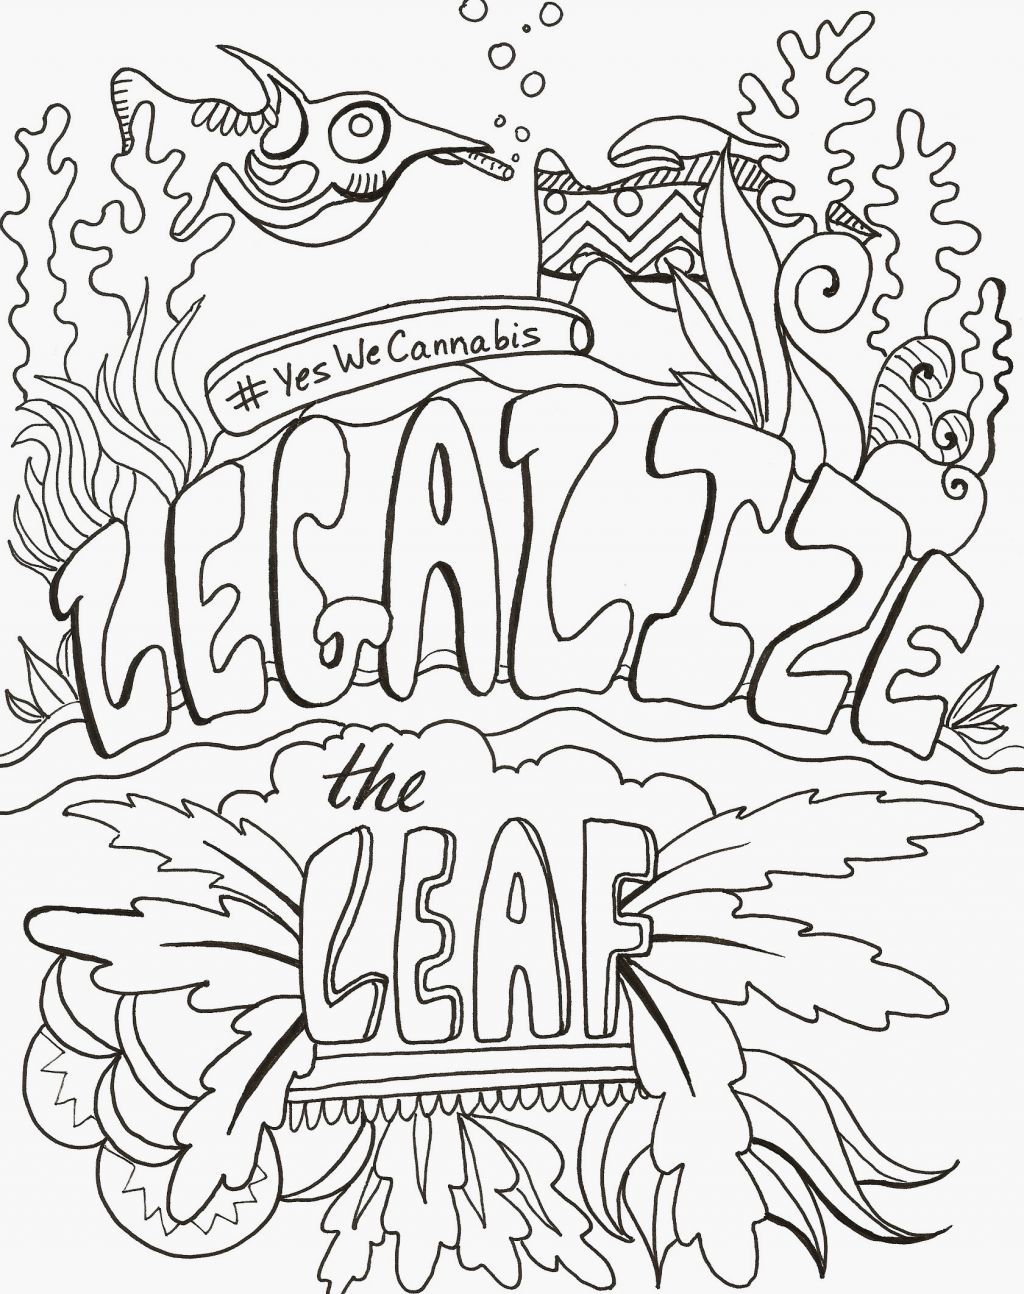 Hippie Stoner Coloring Pages : hippie, stoner, coloring, pages, Stoner, Coloring, Pages